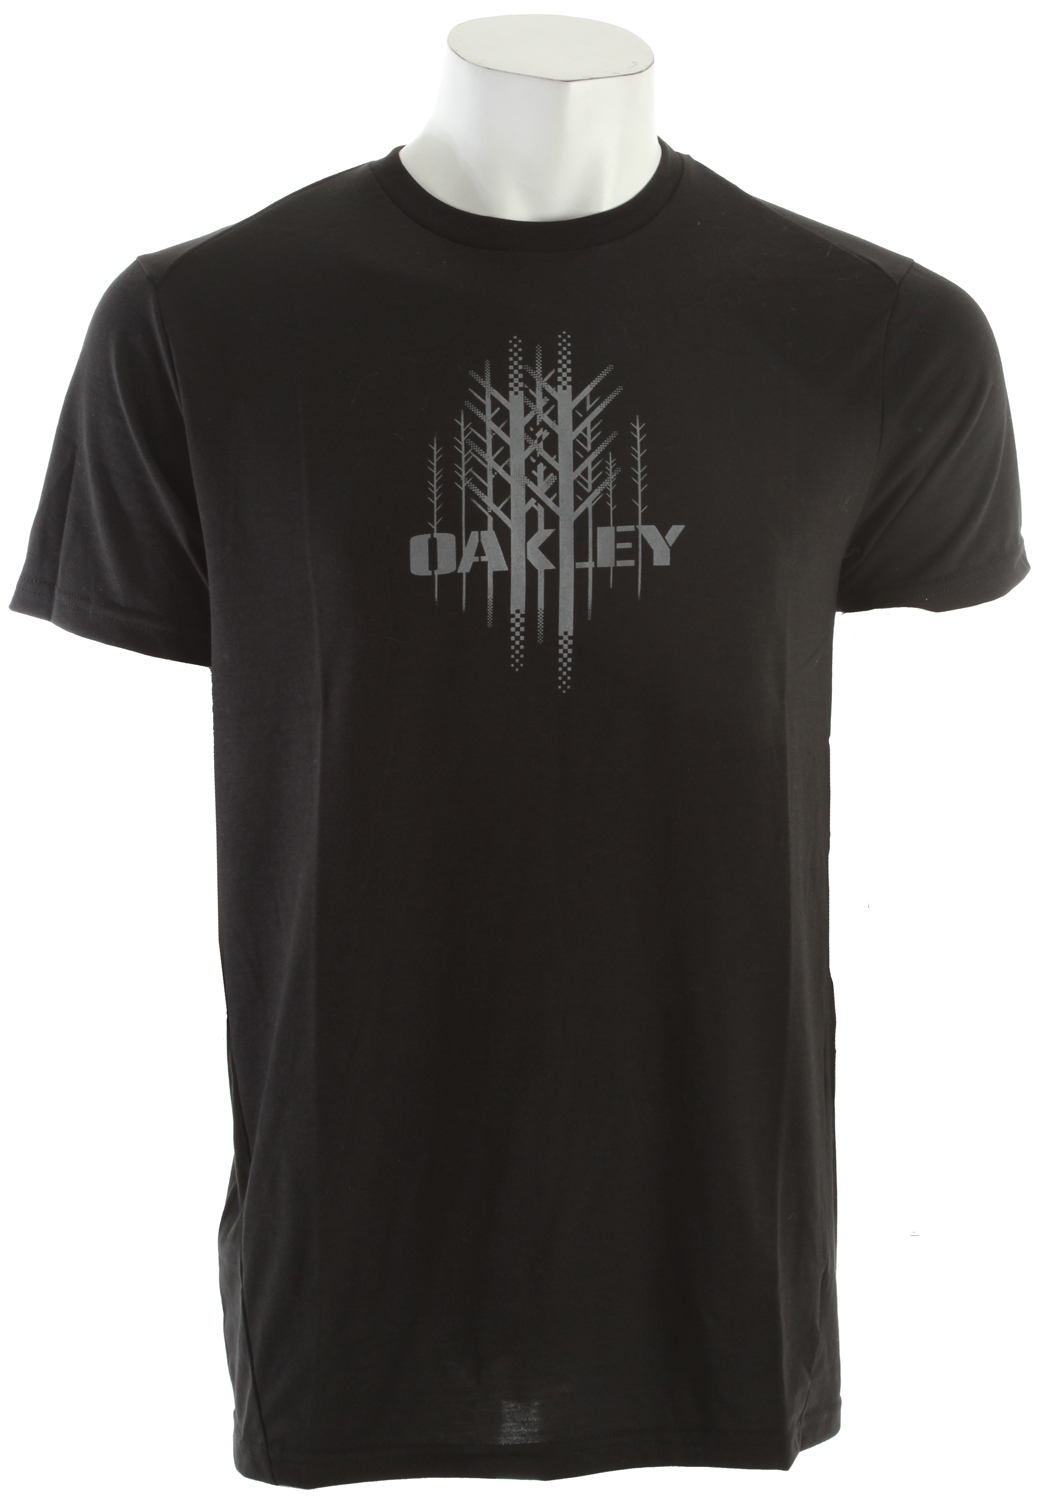 Oakley Screaching Tree T-Shirt - $20.95